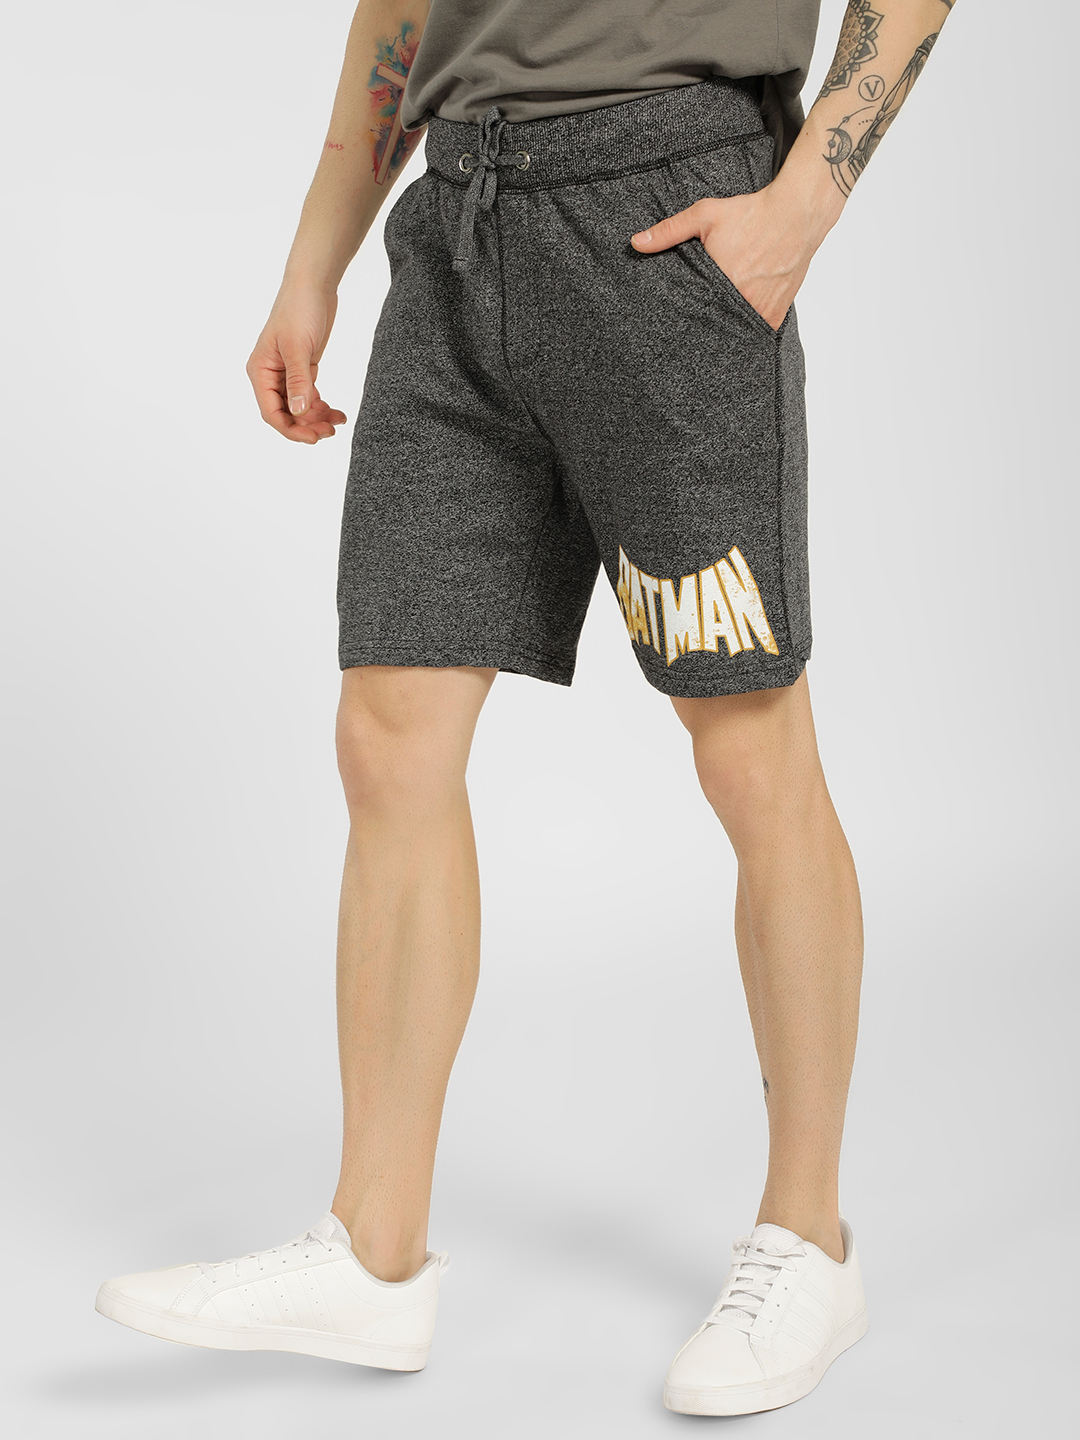 Free Authority Black Batman Textured Knit Shorts 1